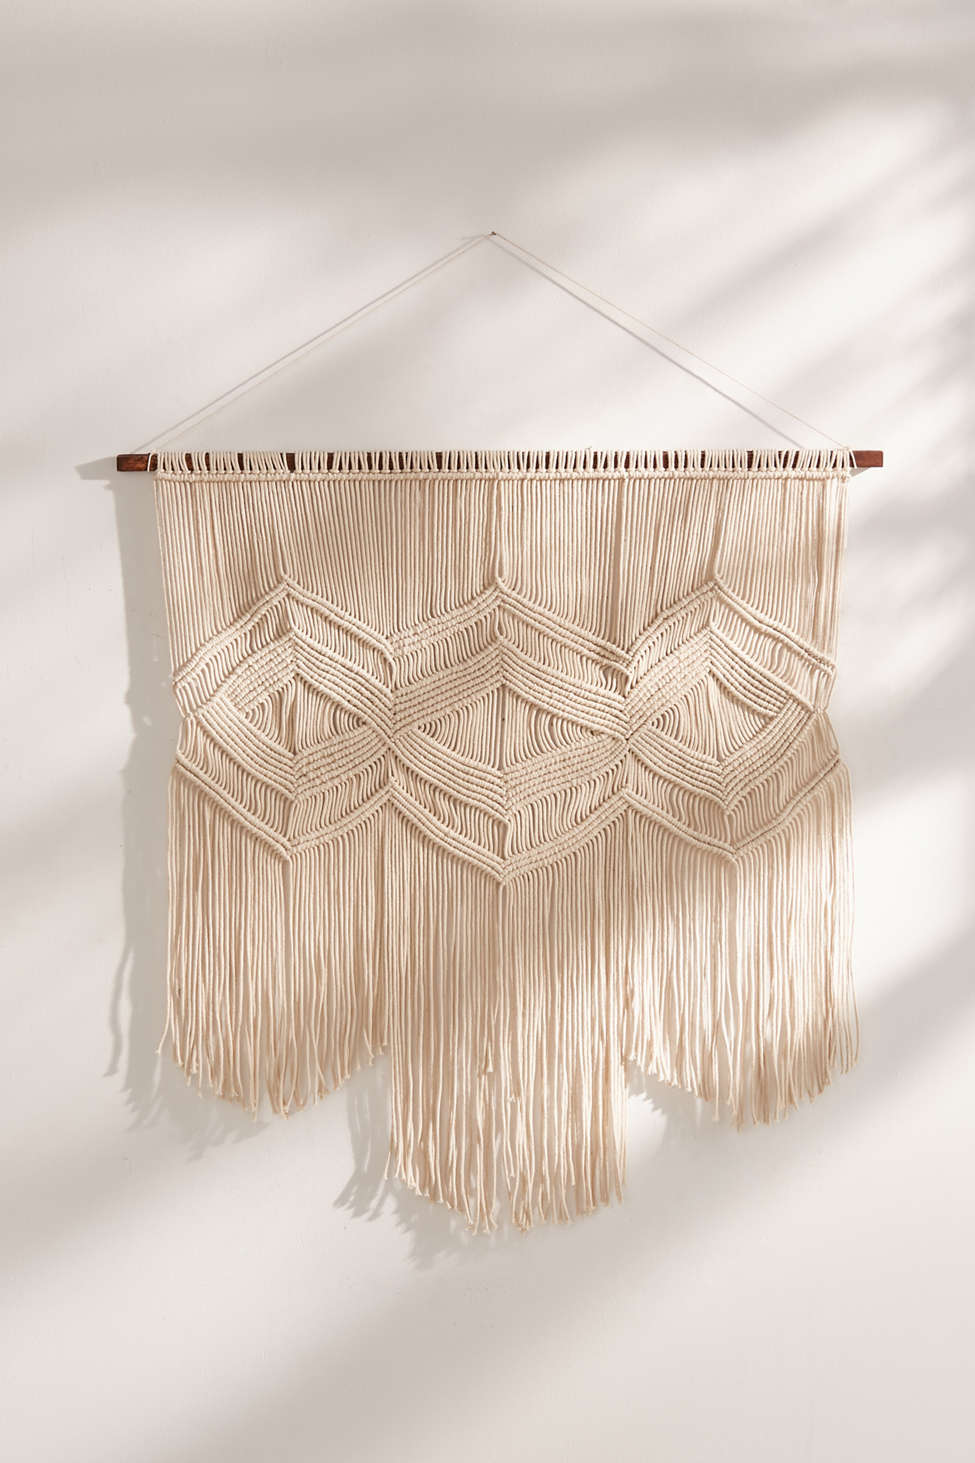 Macrame Wall Hangings Room Decor Urban Outfitters Wall Art